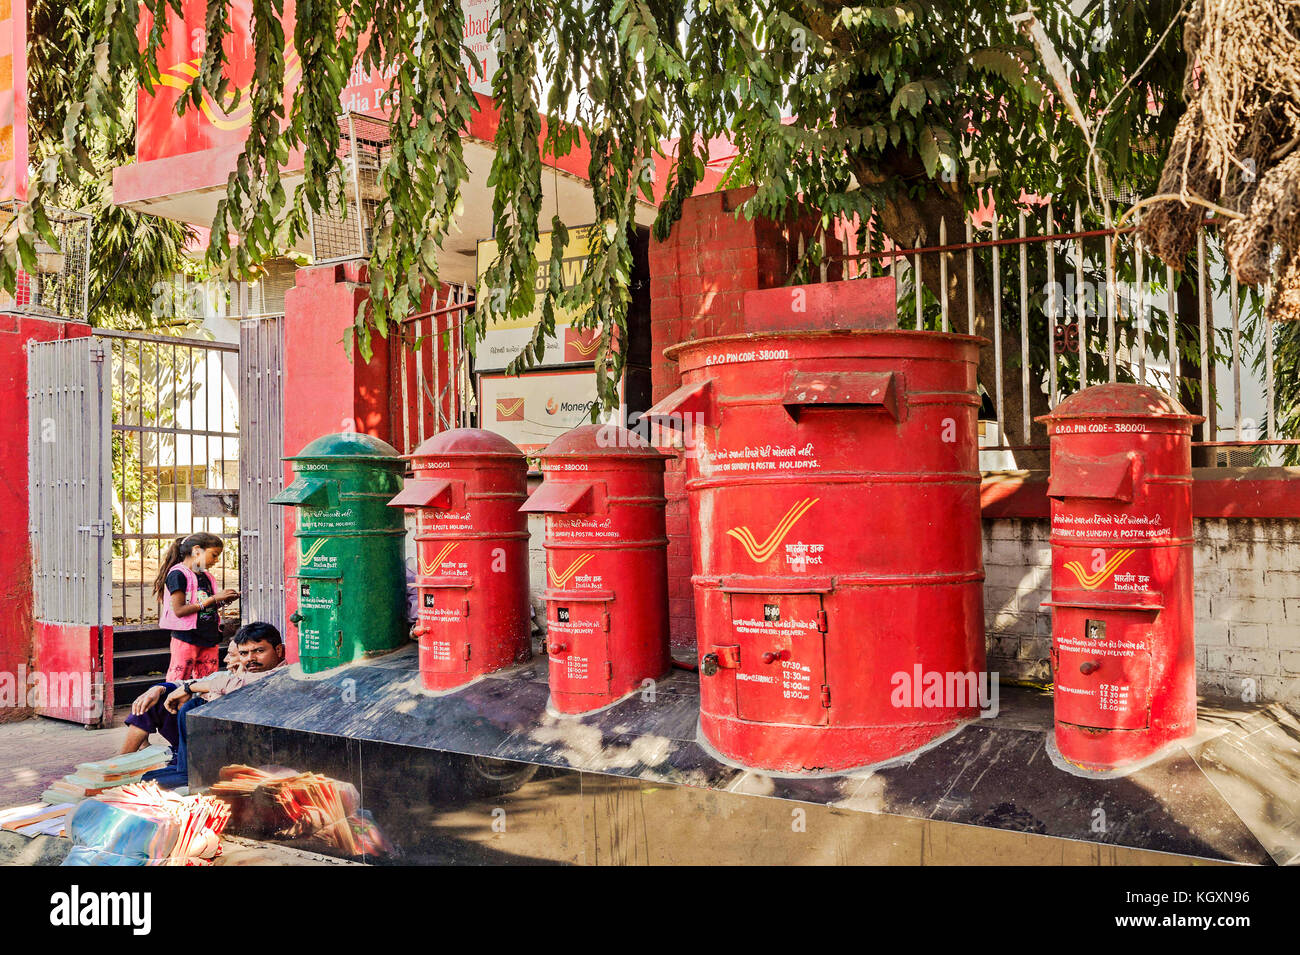 General post office ahmedabad gujarat india asia stock image